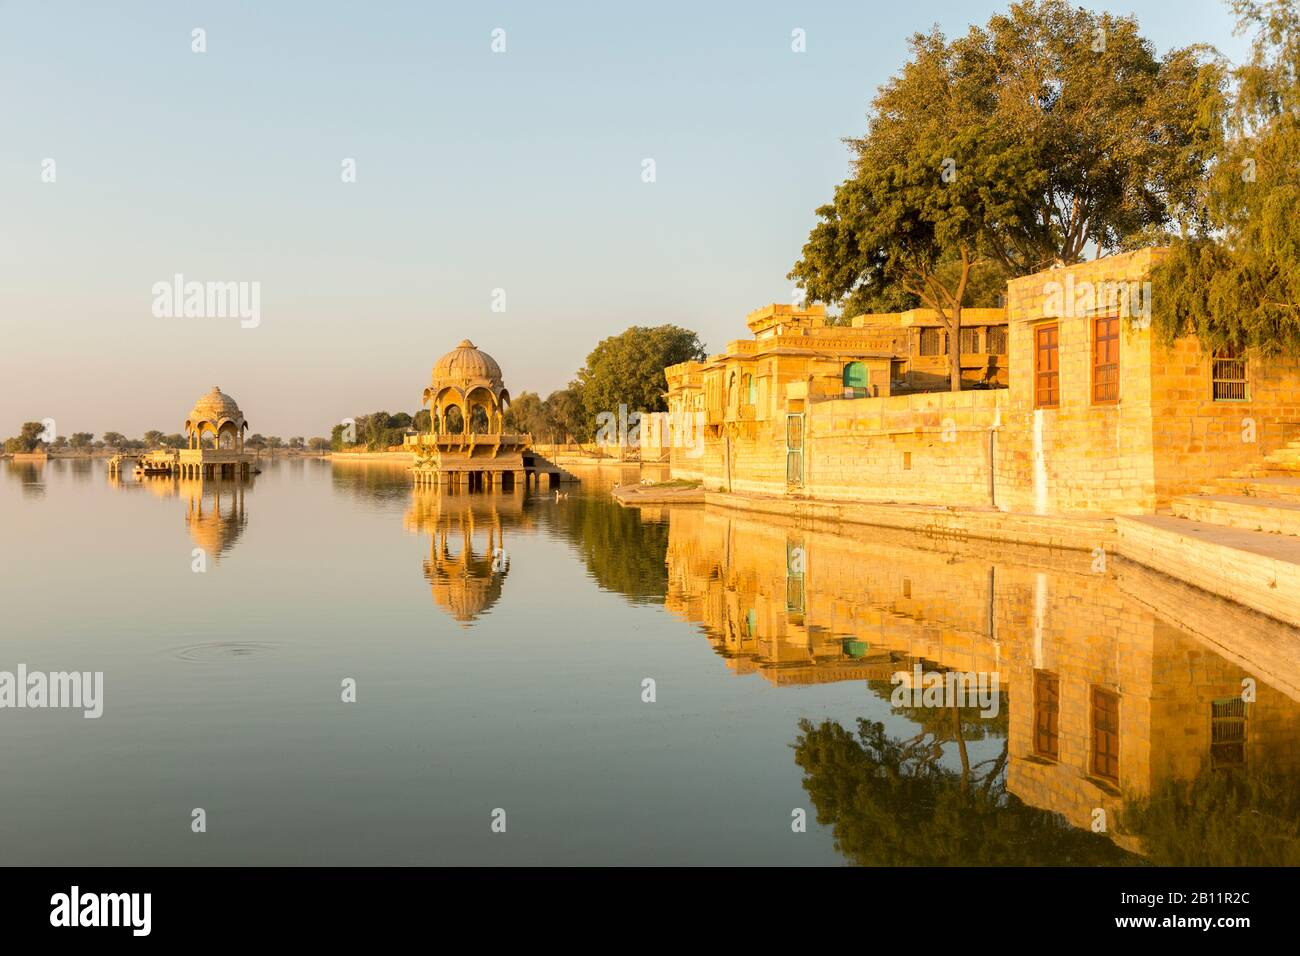 Sunrise and temple Gadi Sagar, Gadisar Lake, Jaisalmer, Rajasthan, India - Stock Photo